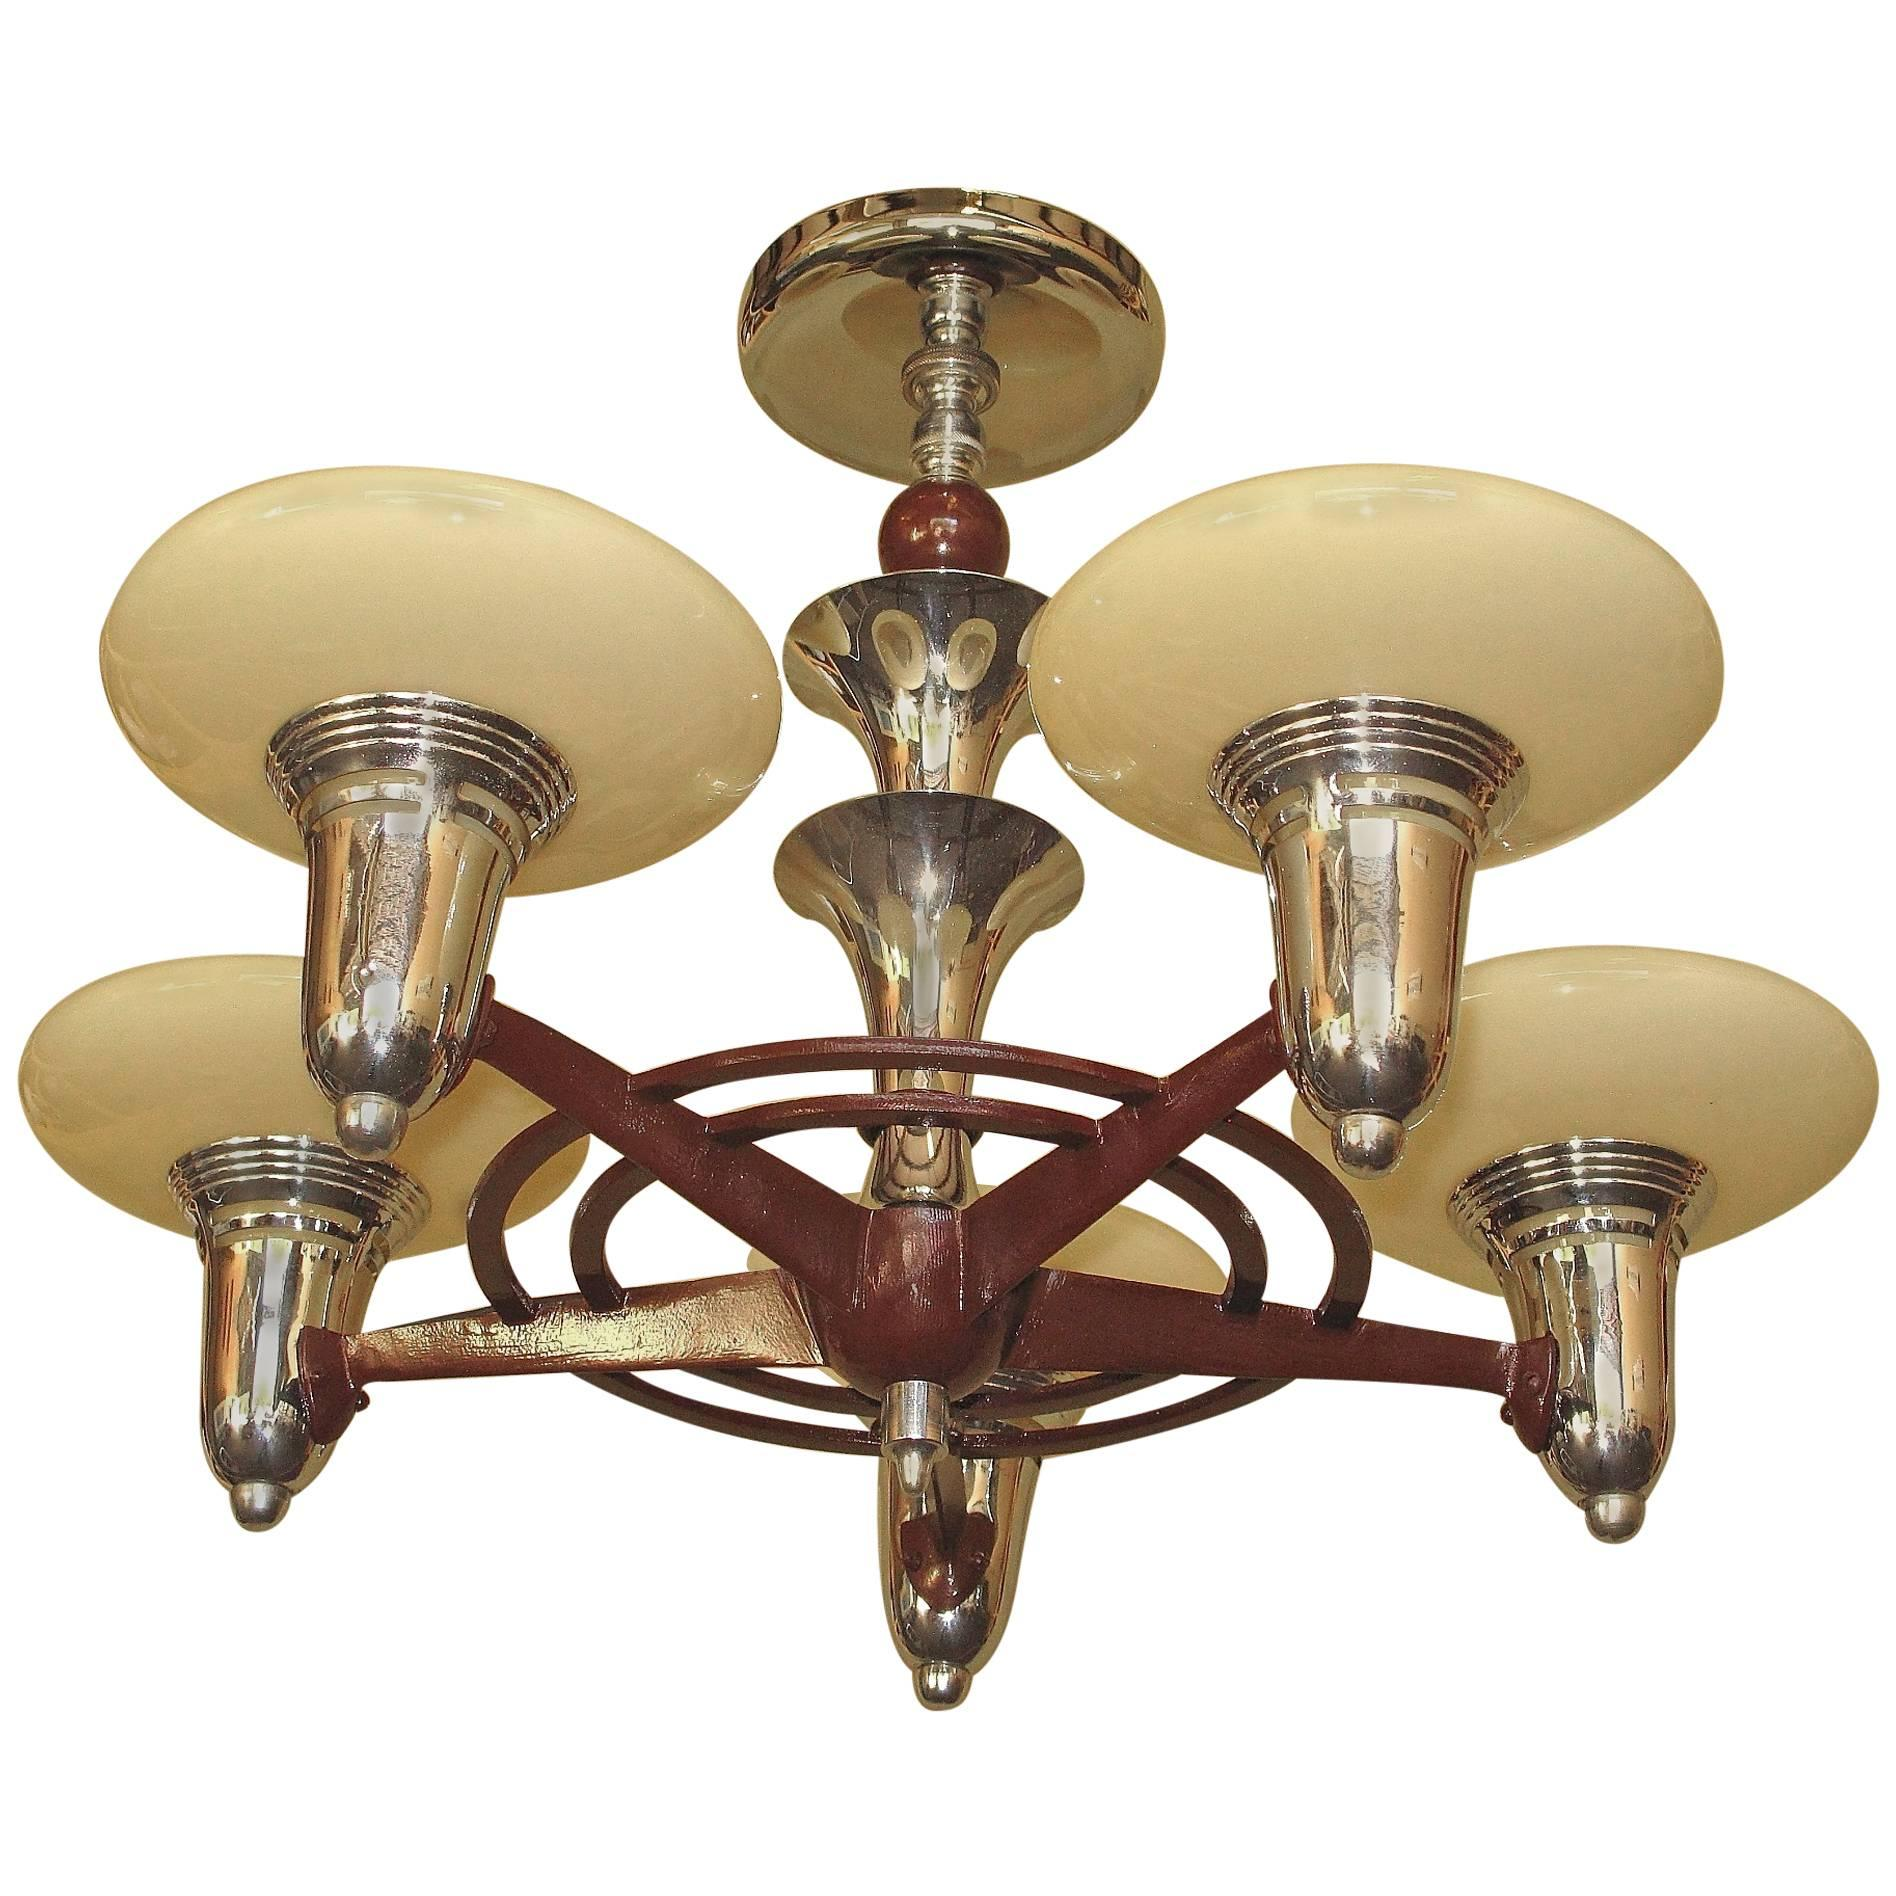 1930s mid century semi flush mount five light fixture for sale at 1stdibs